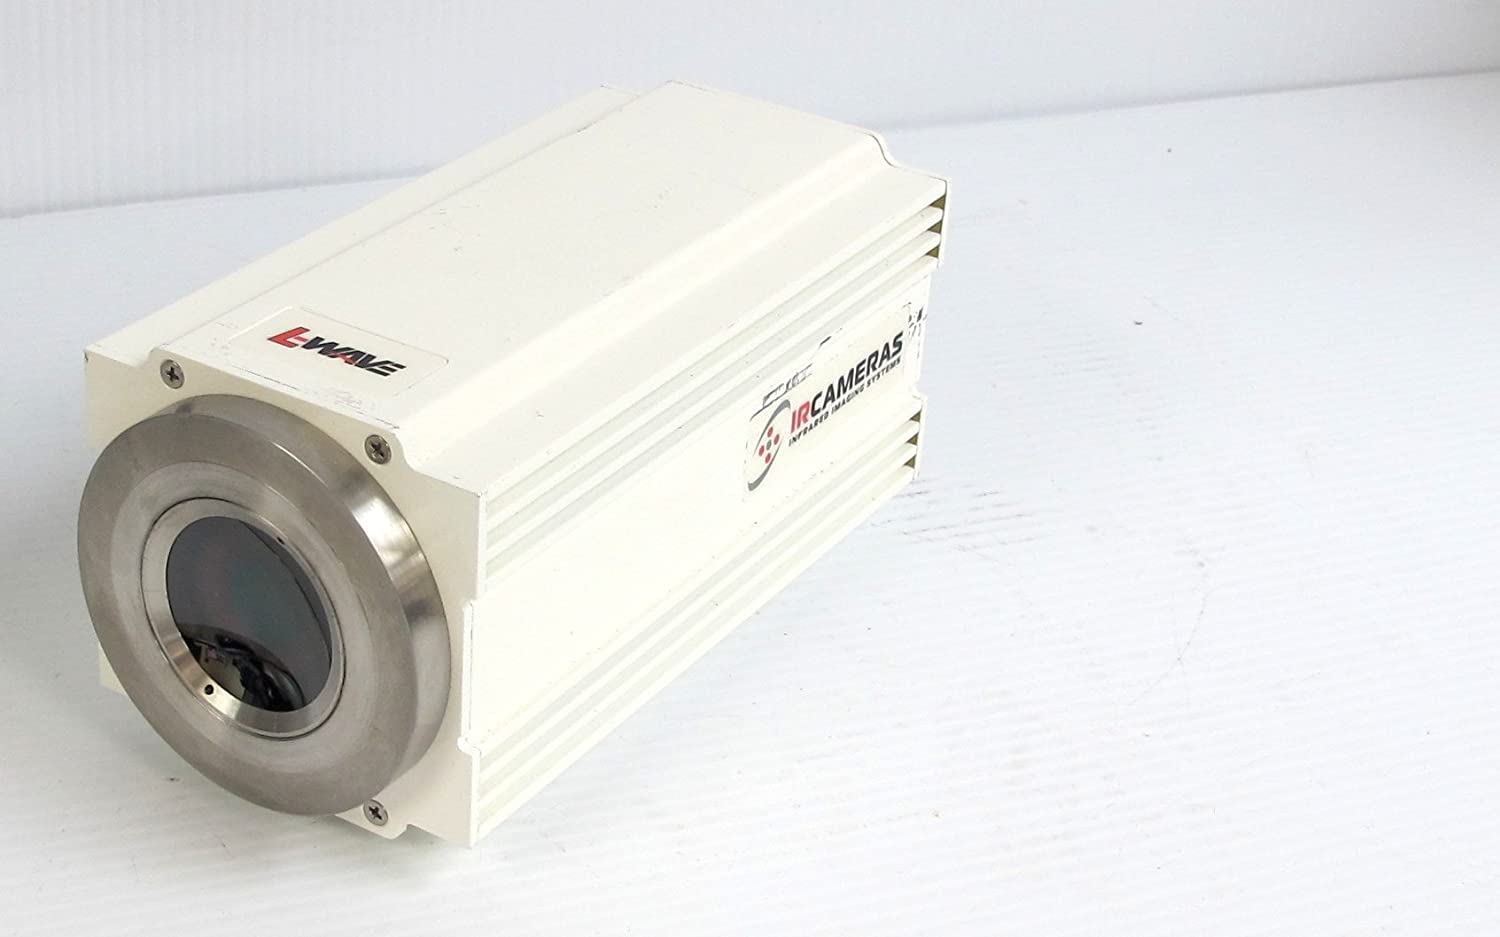 IRcameras Inc. L-Wave Long Wave Infrared Camera